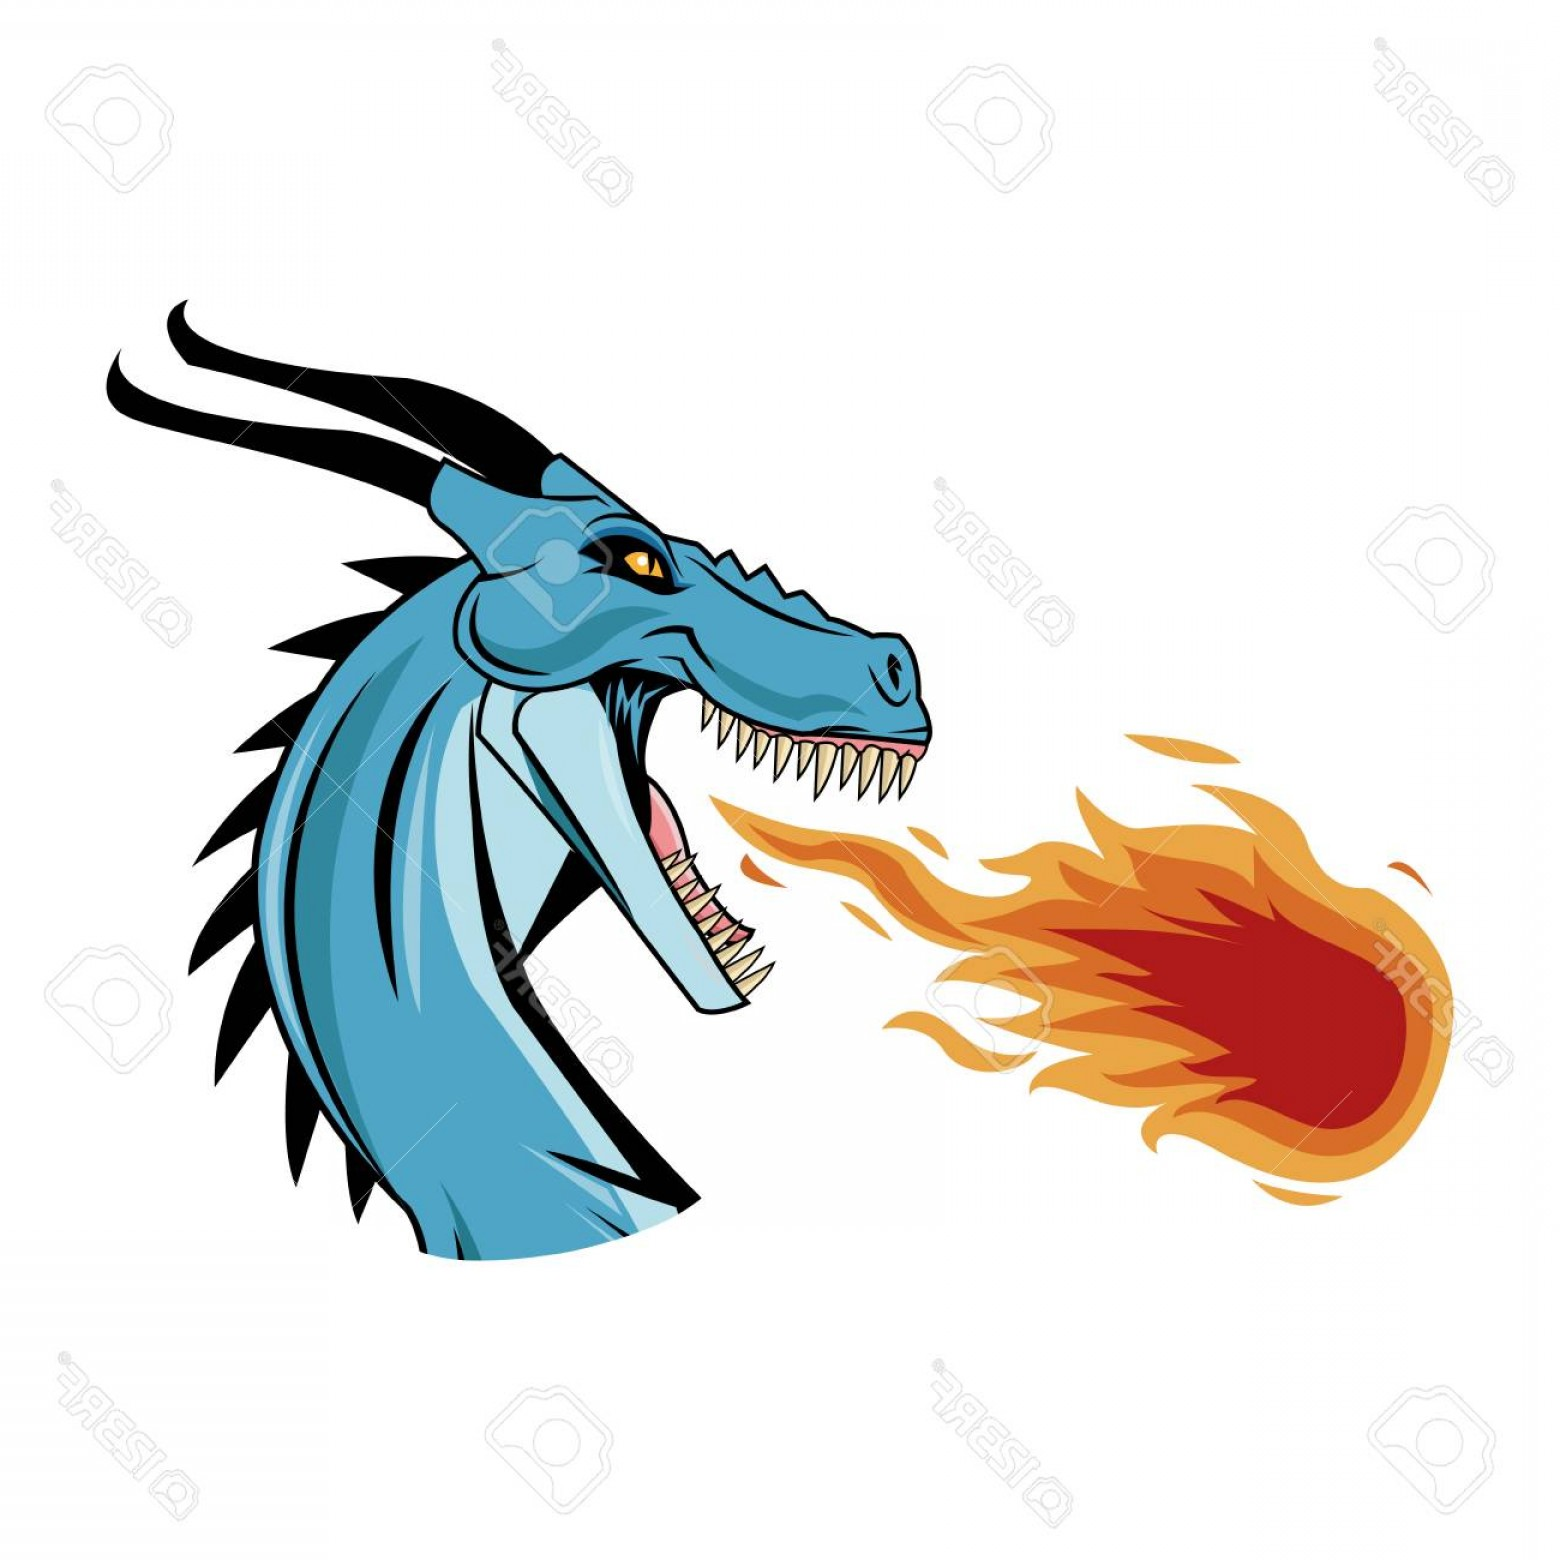 Dragon Fire Vector: Photostock Vector Dragon Throwing Fire Icon Over White Background Colorful Design Vector Illustration